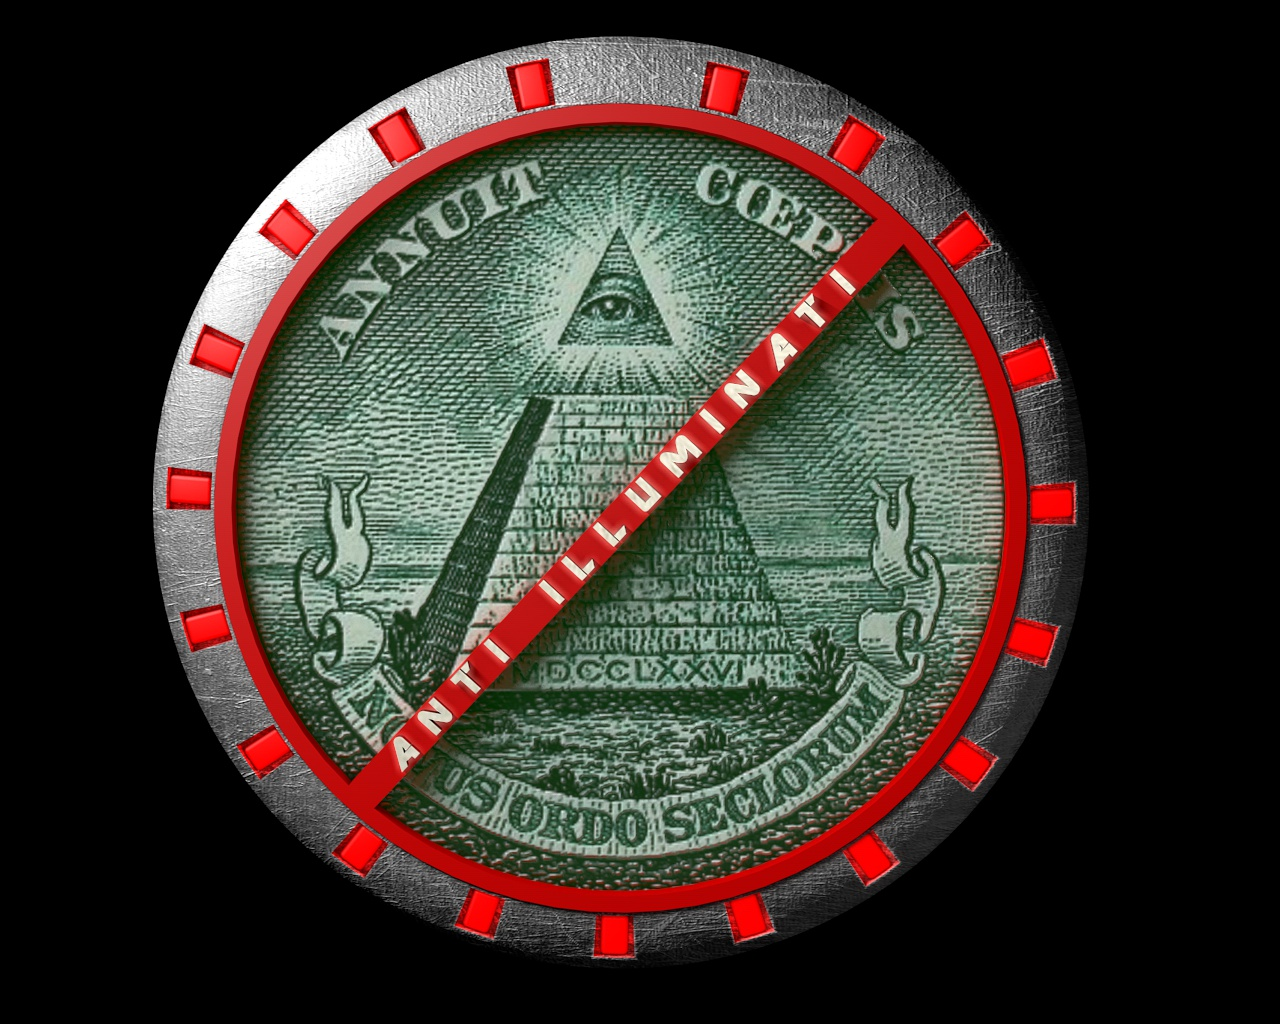 Against illuminati